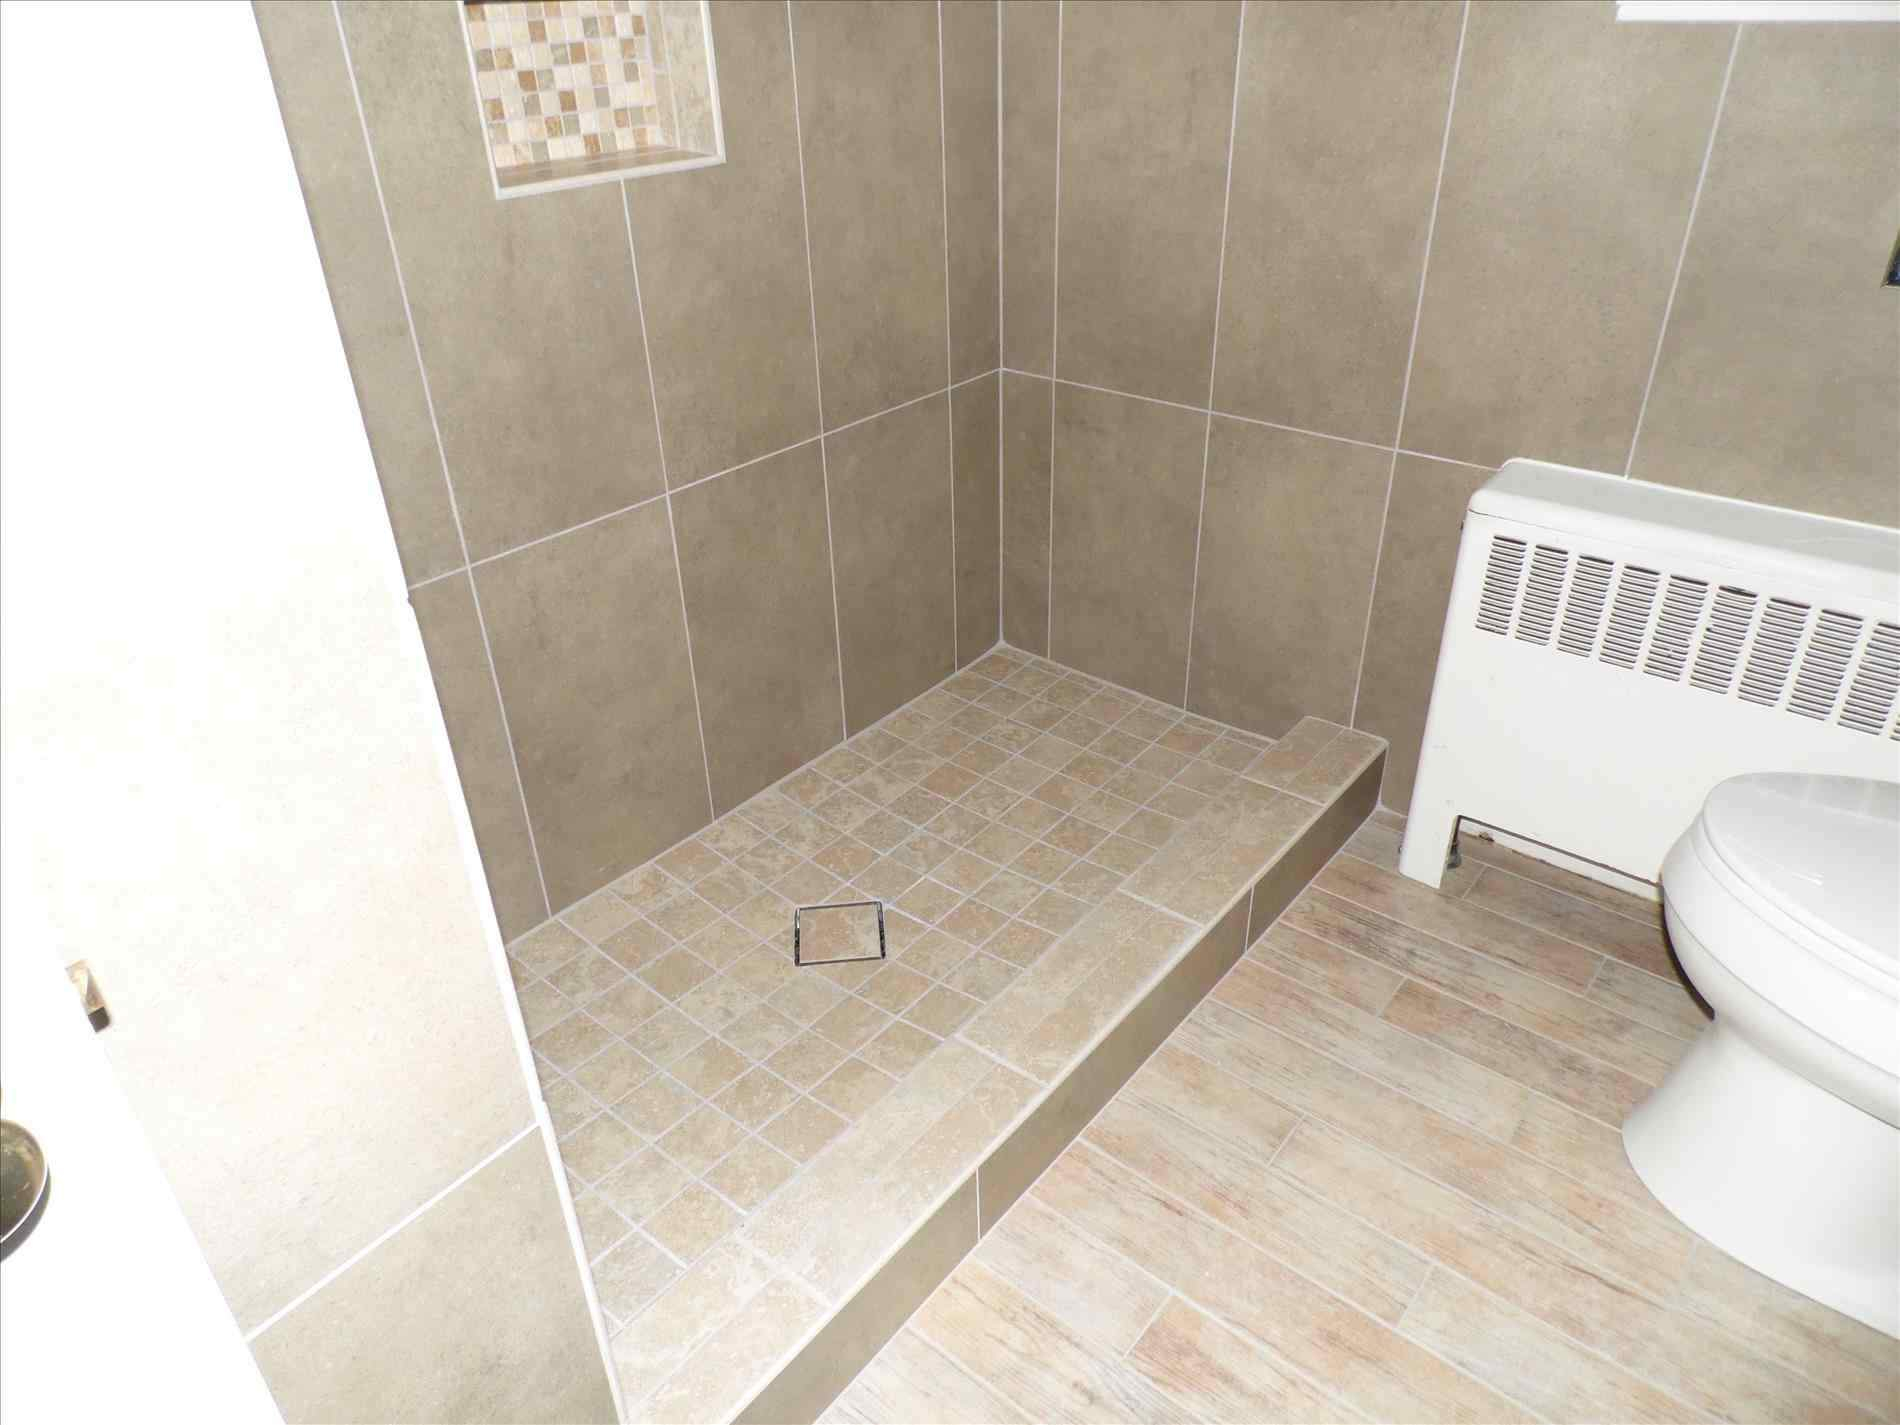 Lovely Best Tile For Small Bathroom Floor Suitable Small Bathroom Floor for Best Tile For Small Bathroom Floor